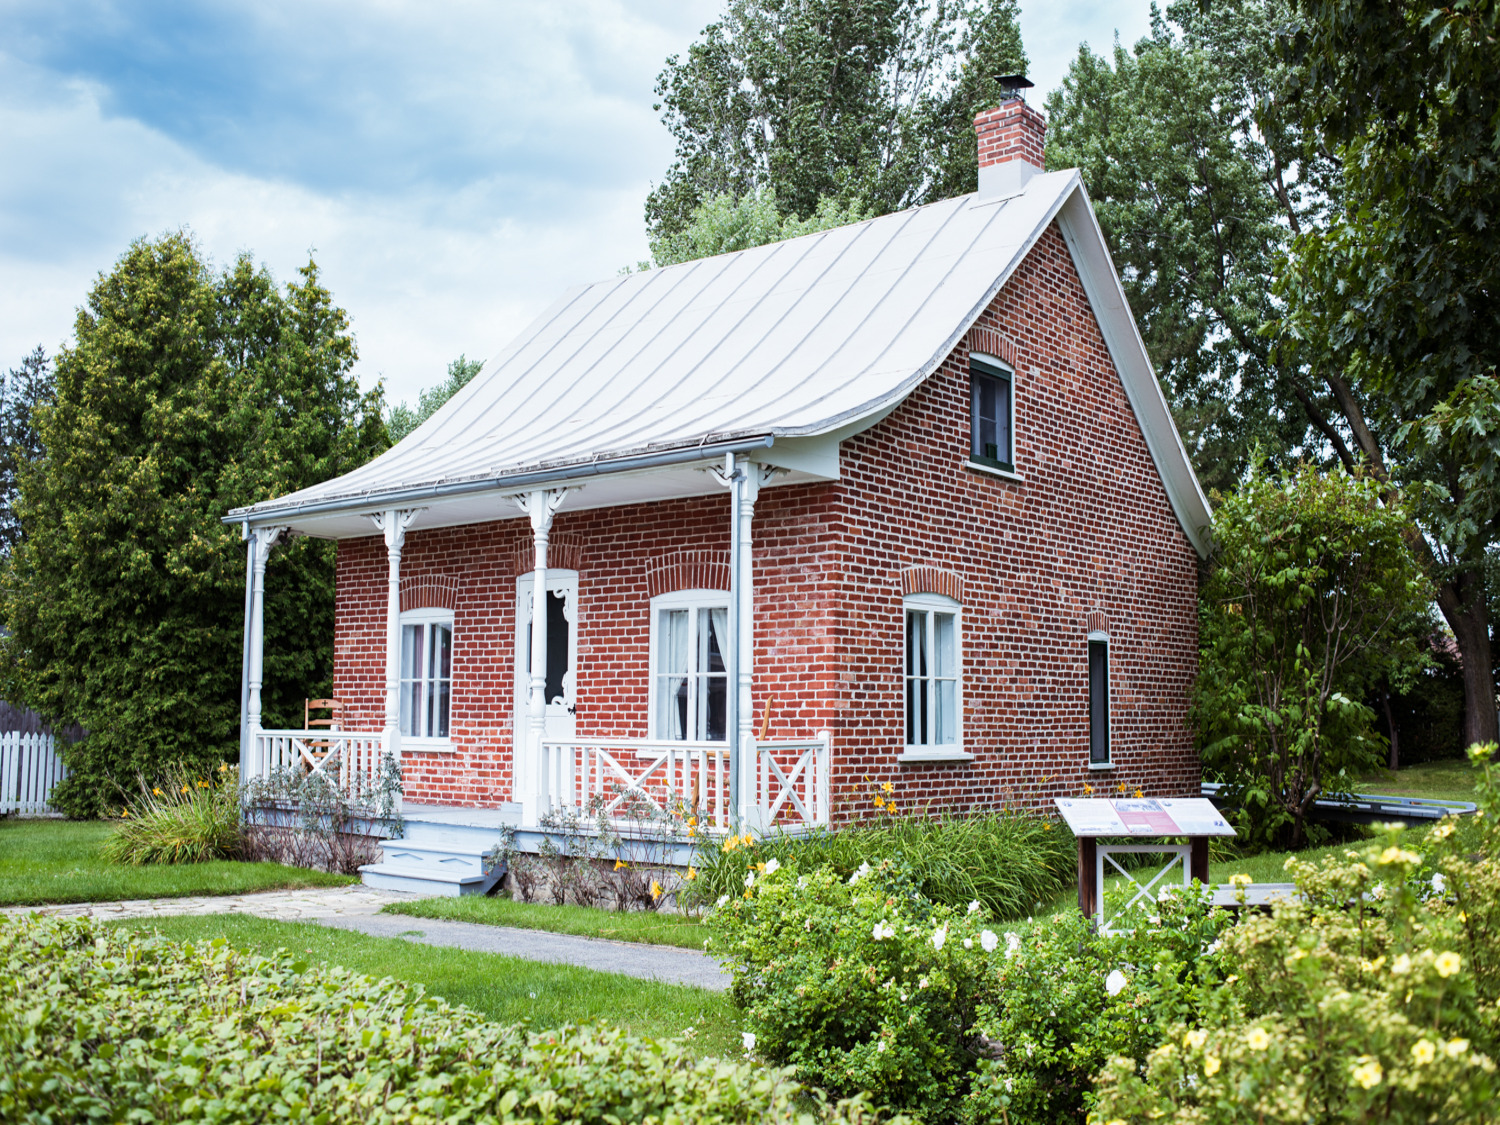 Sir wilfrid laurier national historic site museums and historic sites saint lin laurentides québecoriginal